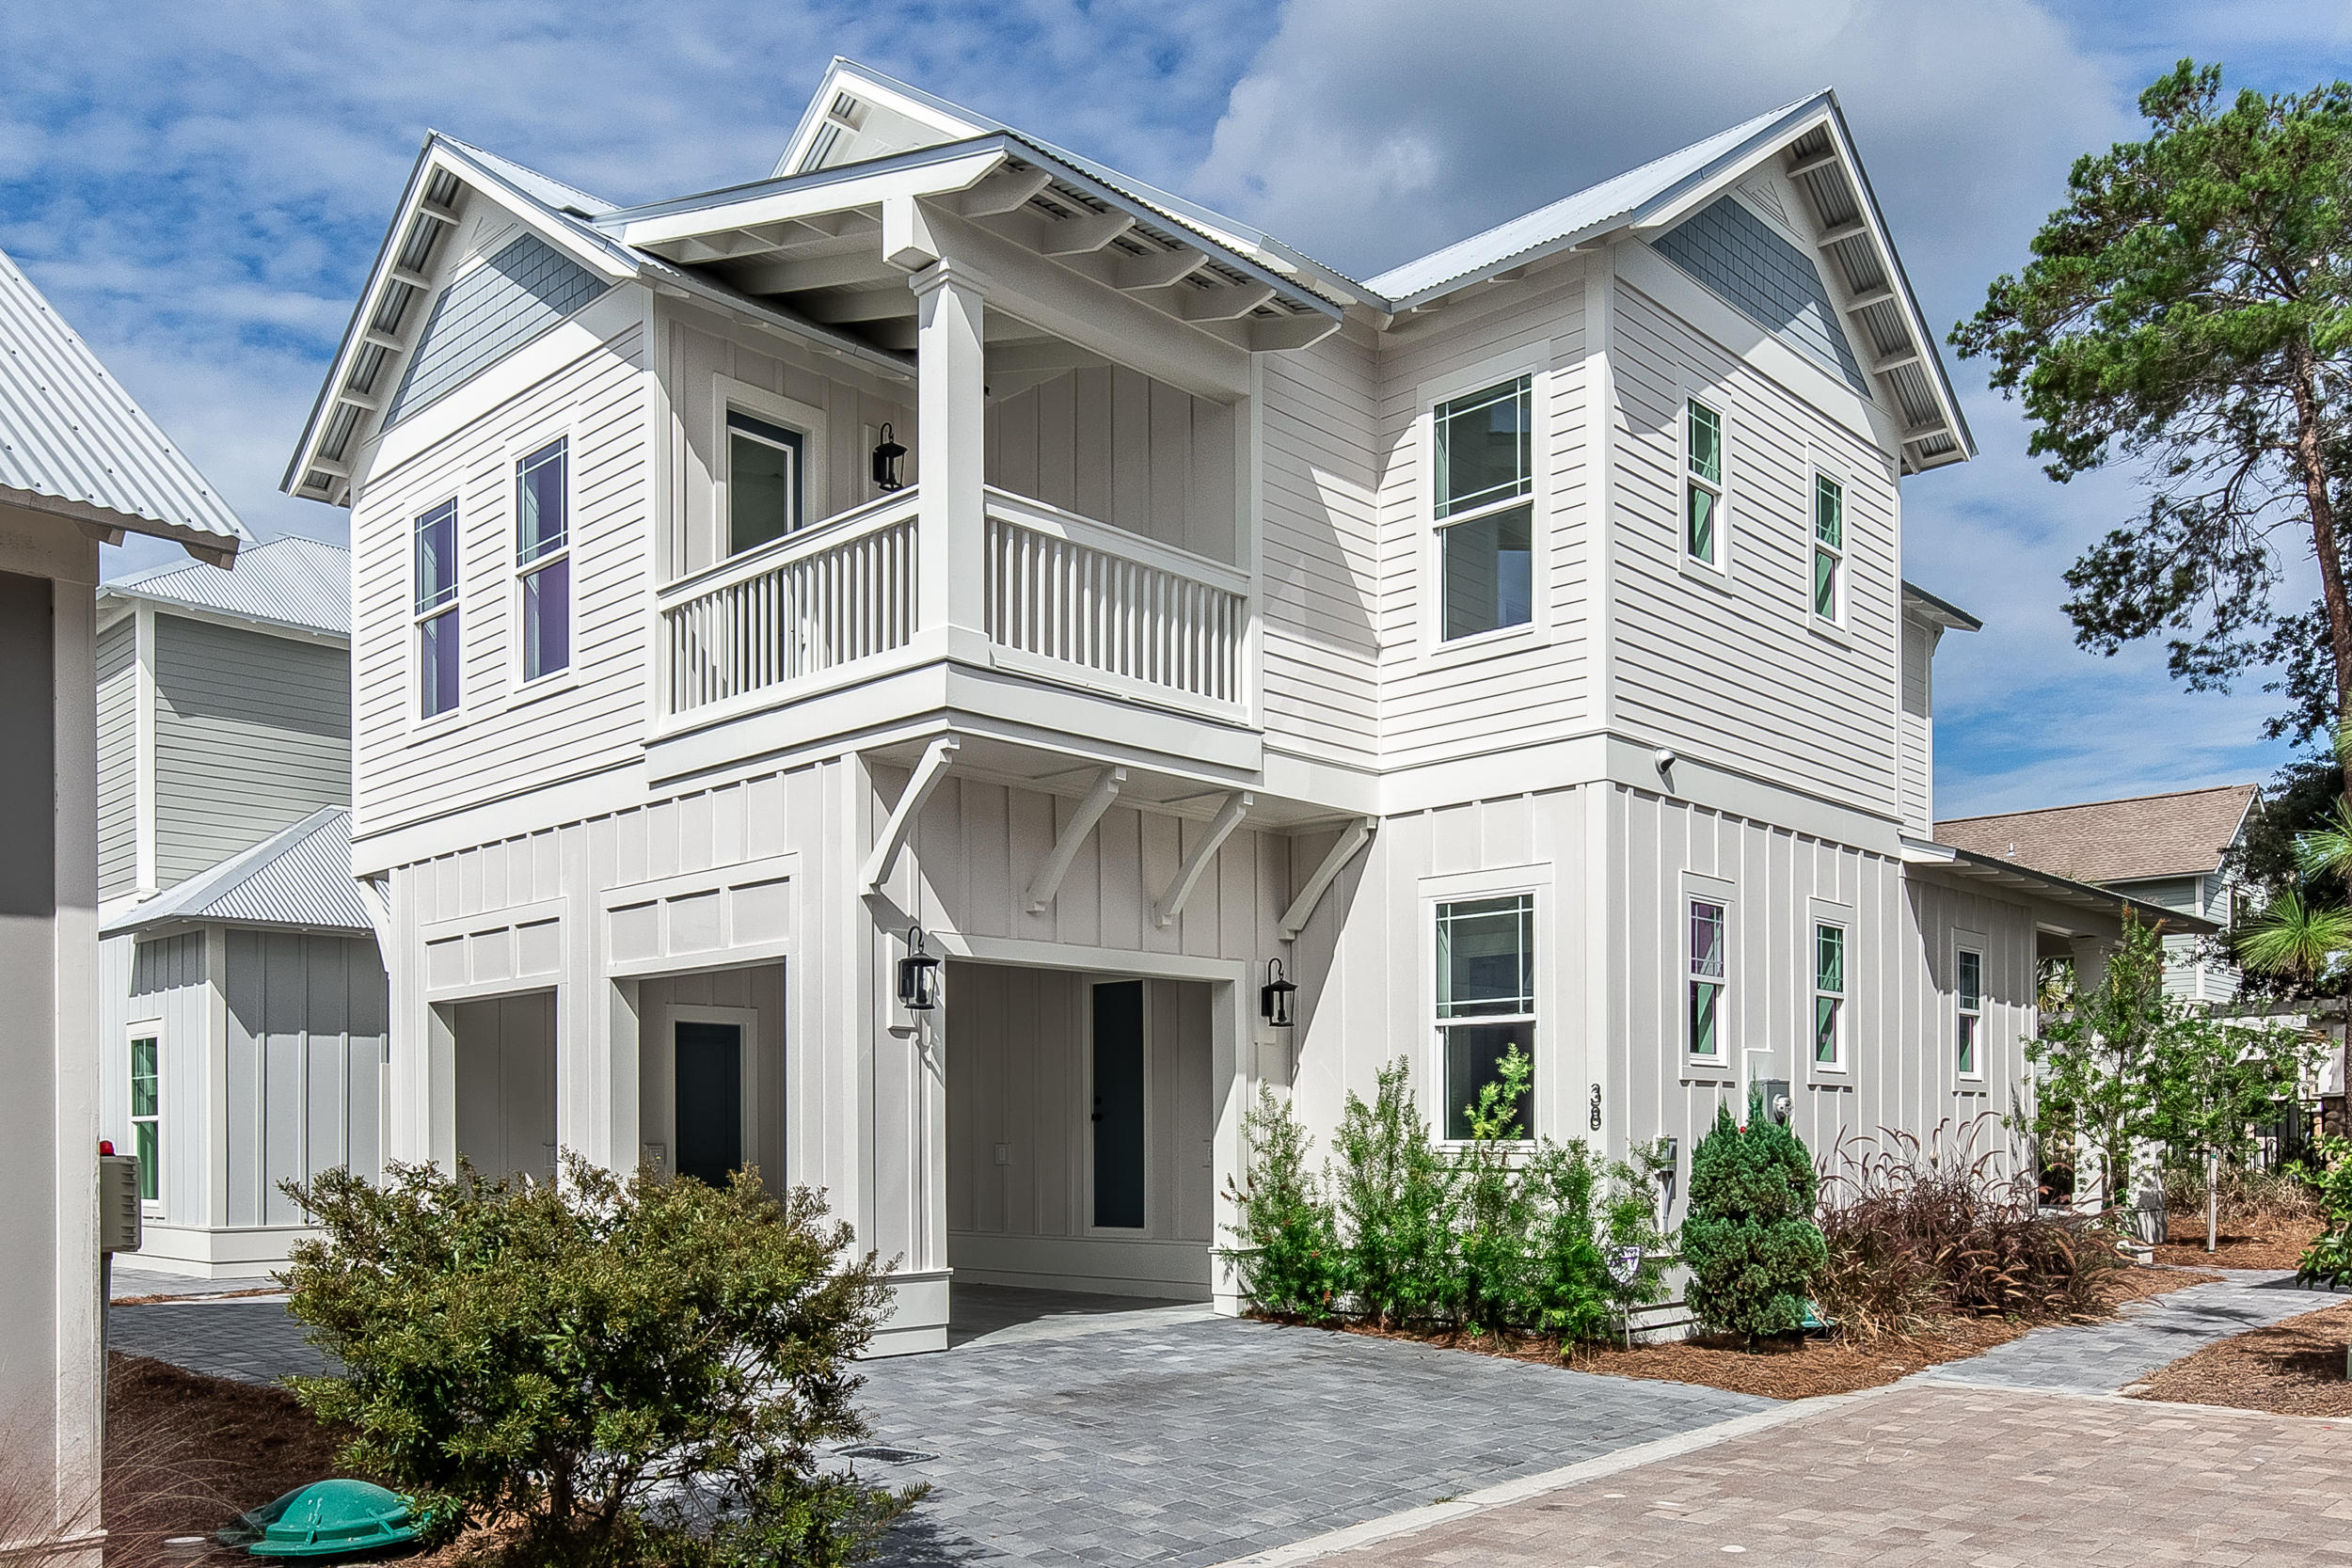 Introducing the Hammock Oaks plan. The first floor consists of a large open living and dining room,